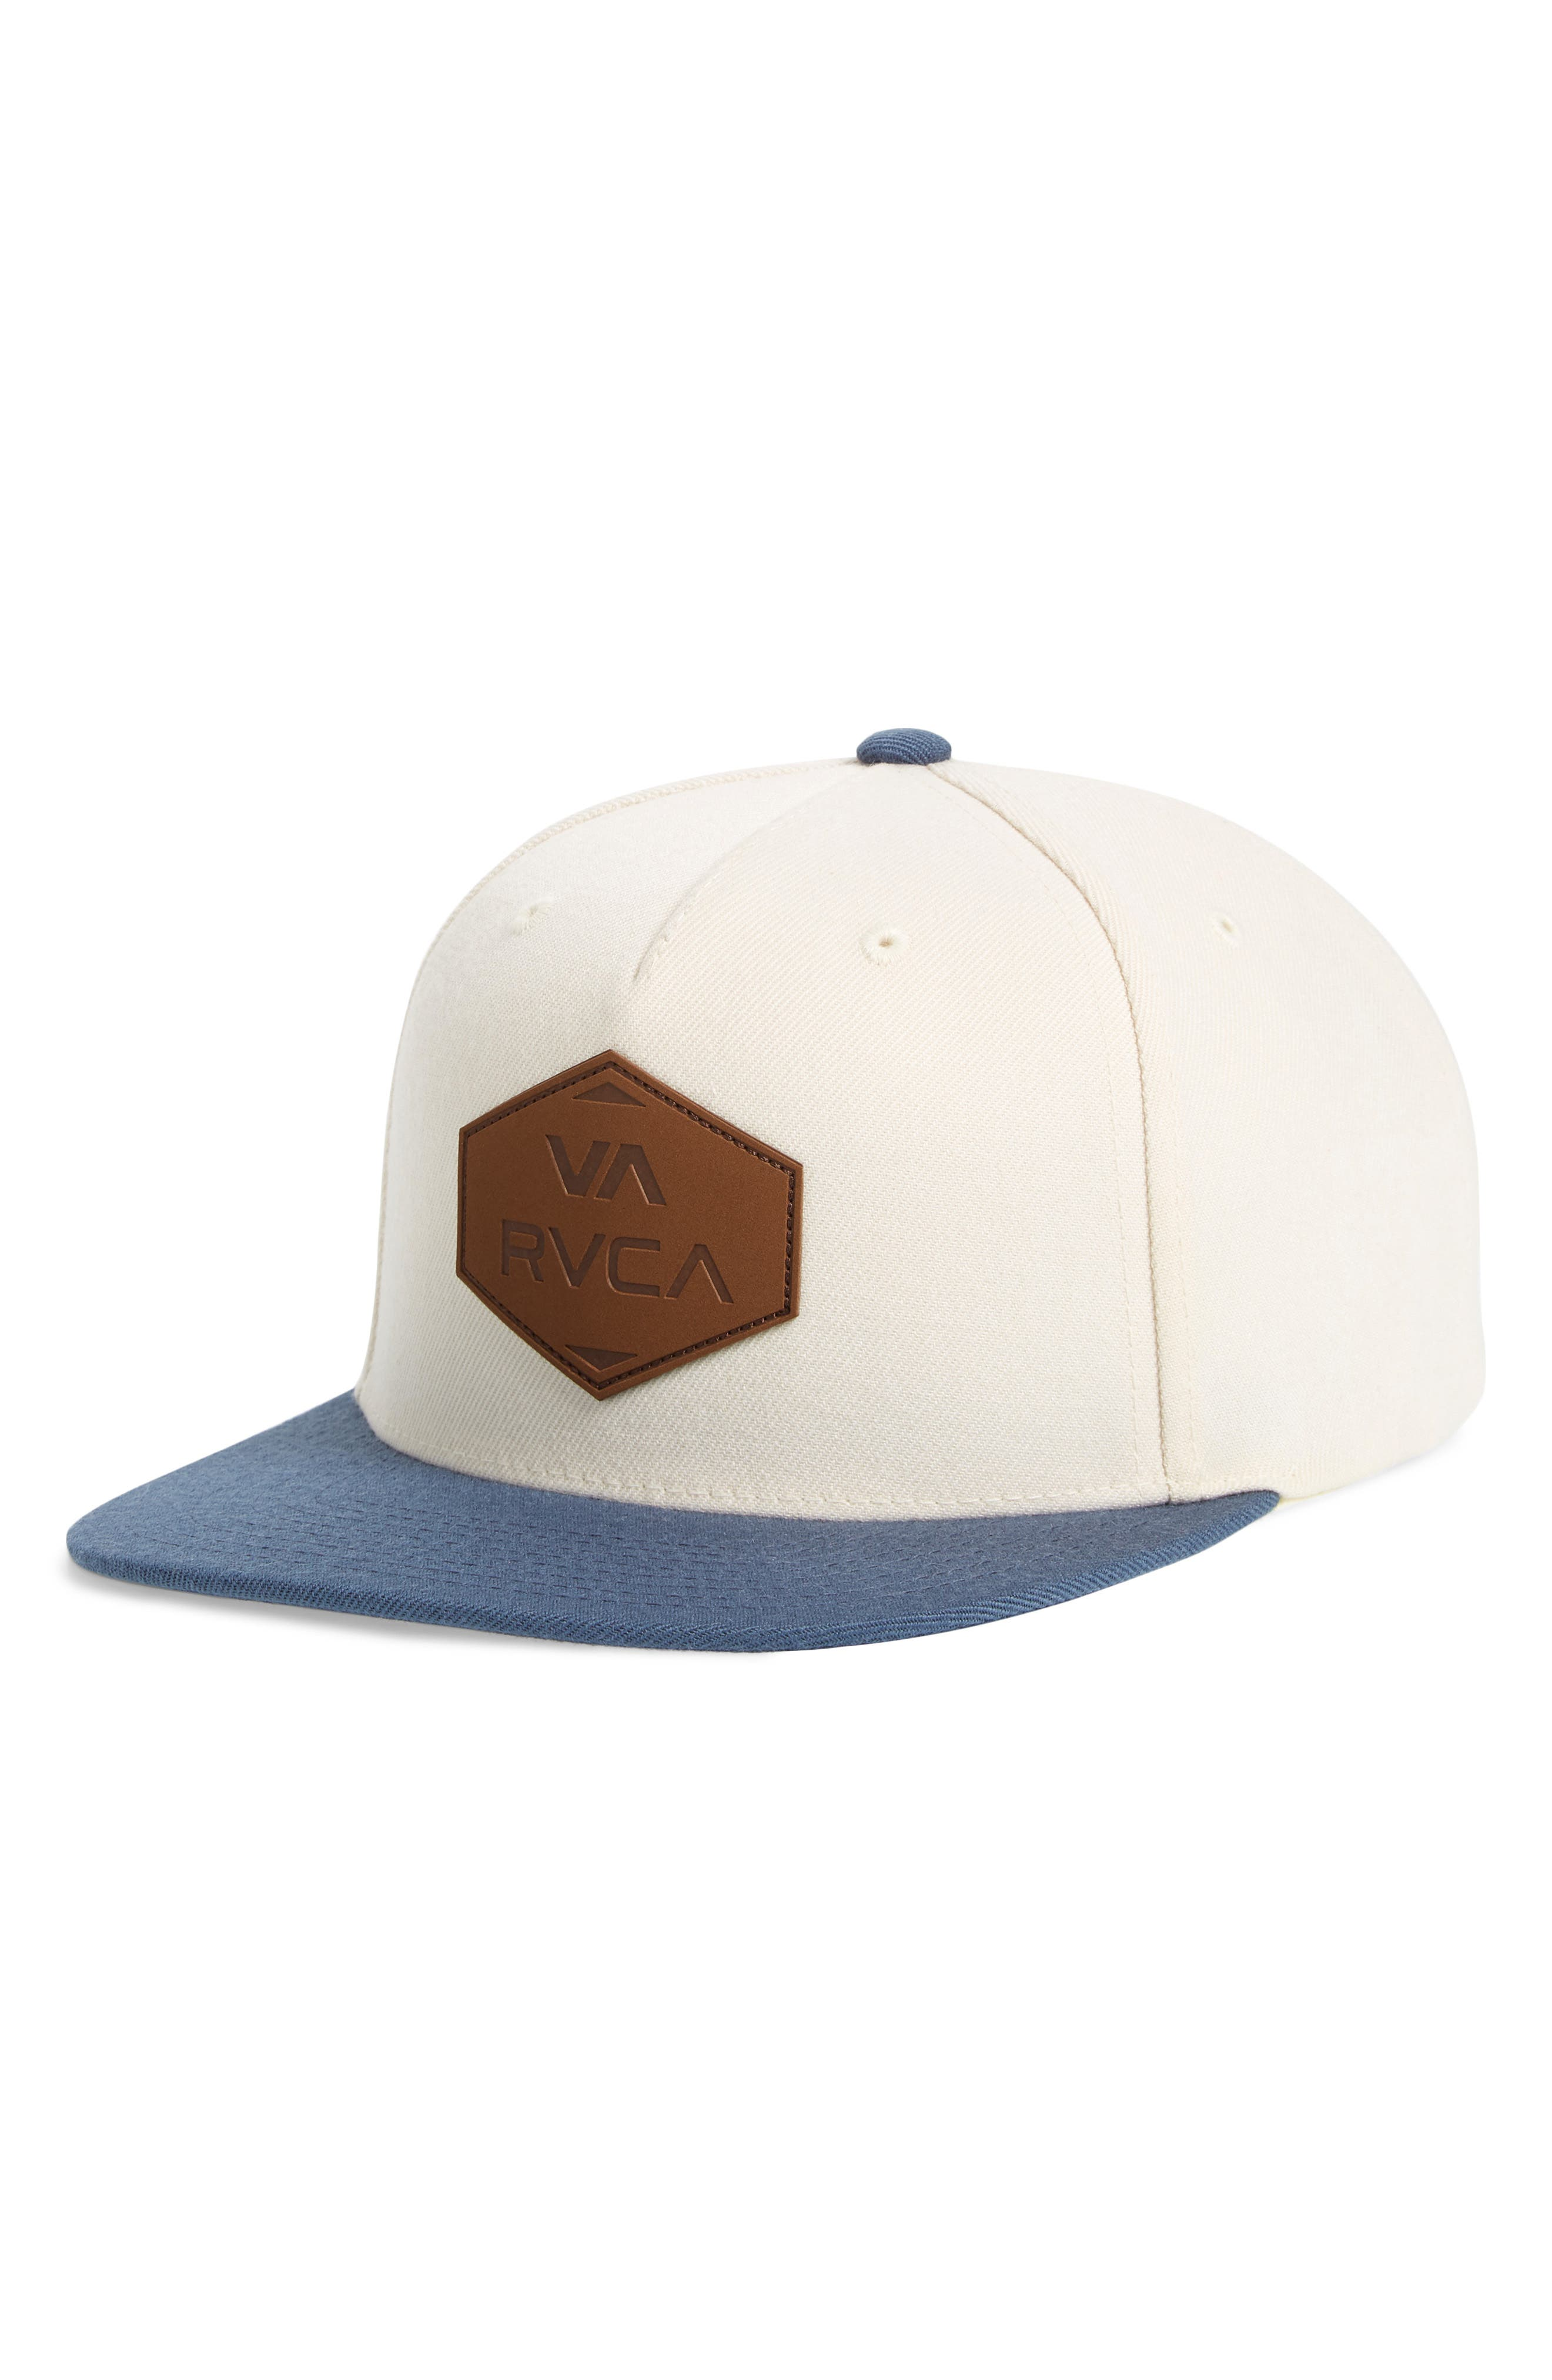 RVCA What Logo Patch Baseball Cap